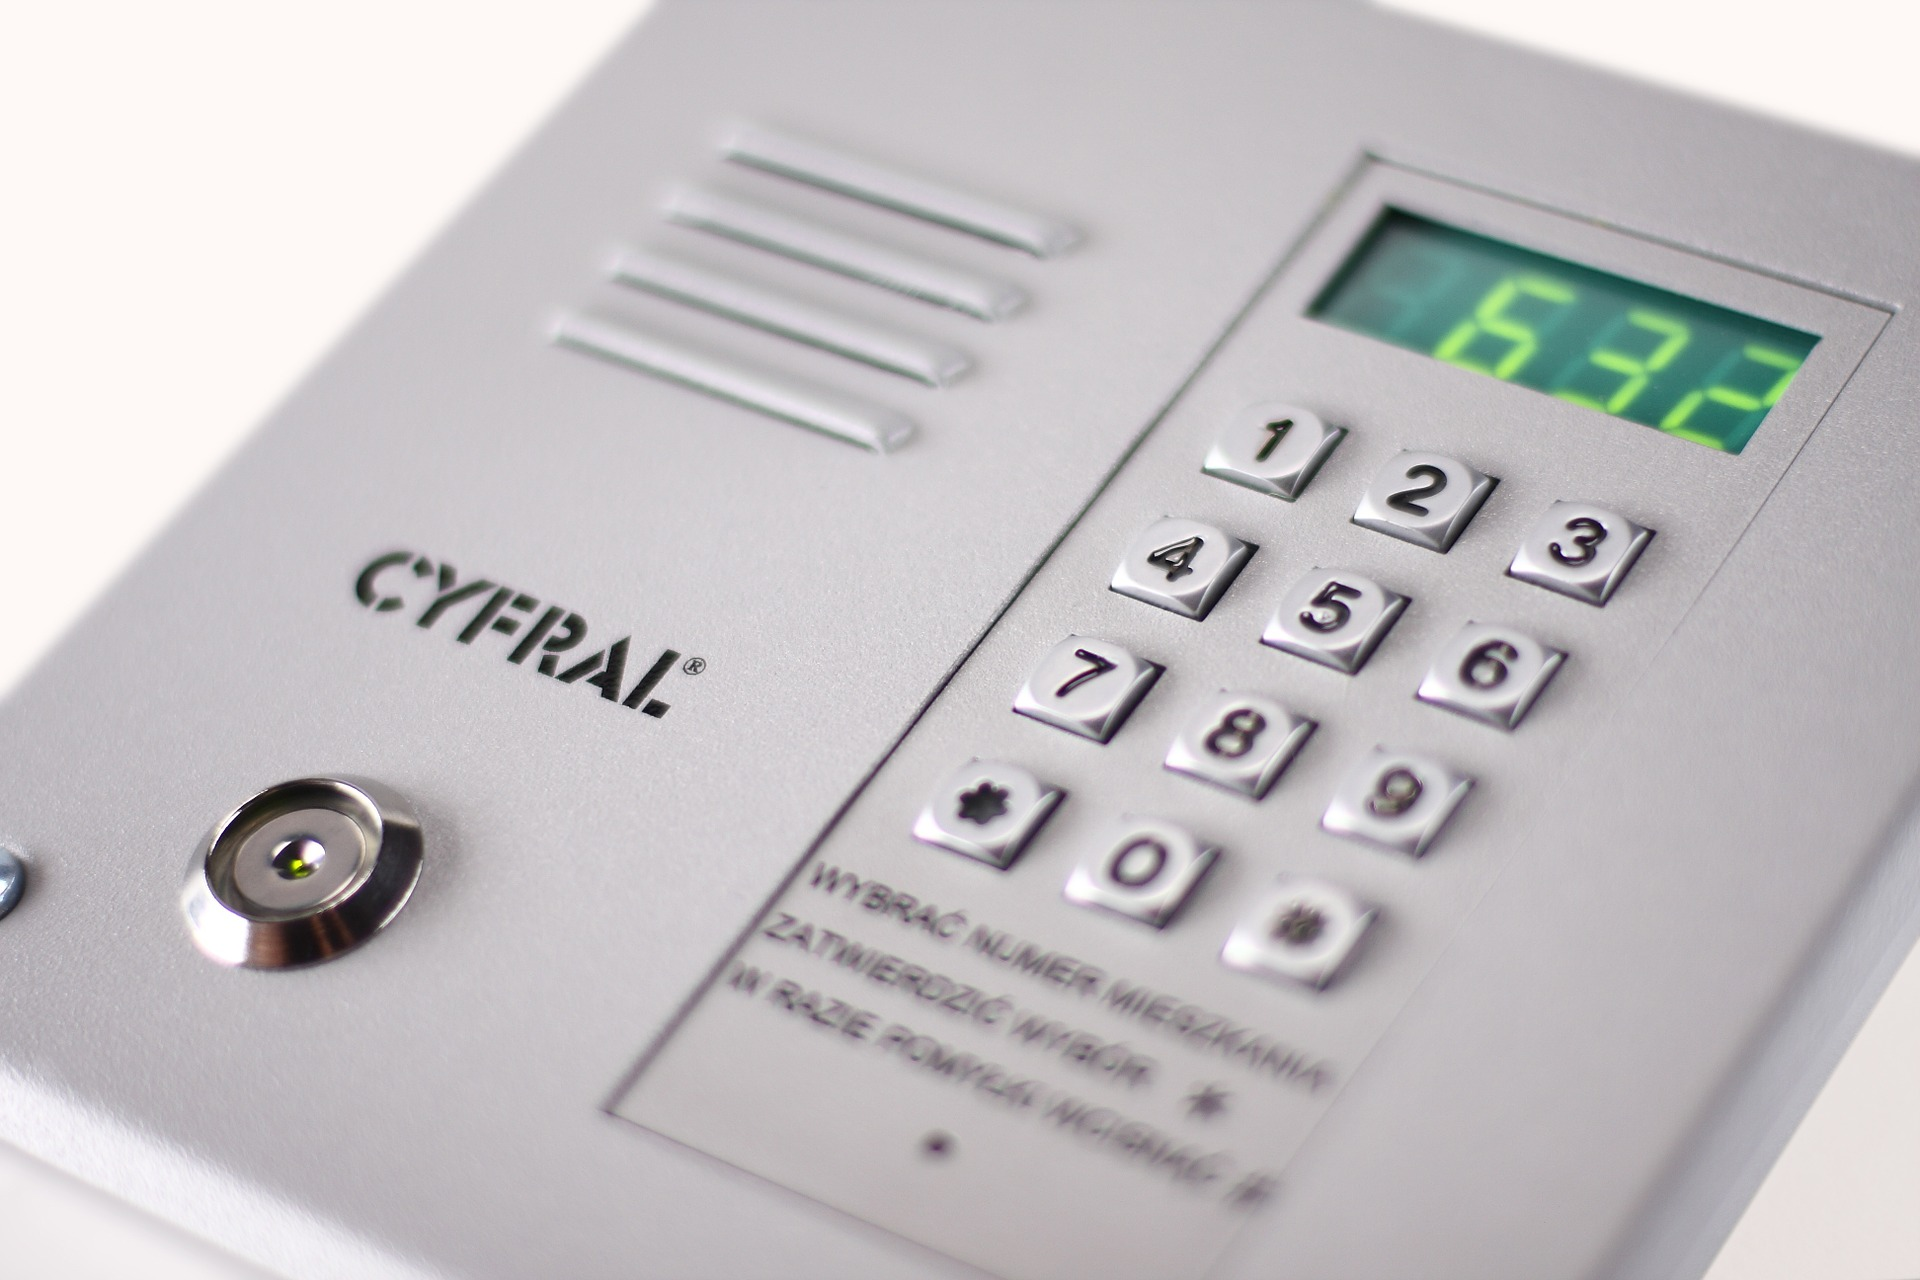 A picture of an alarm control panel